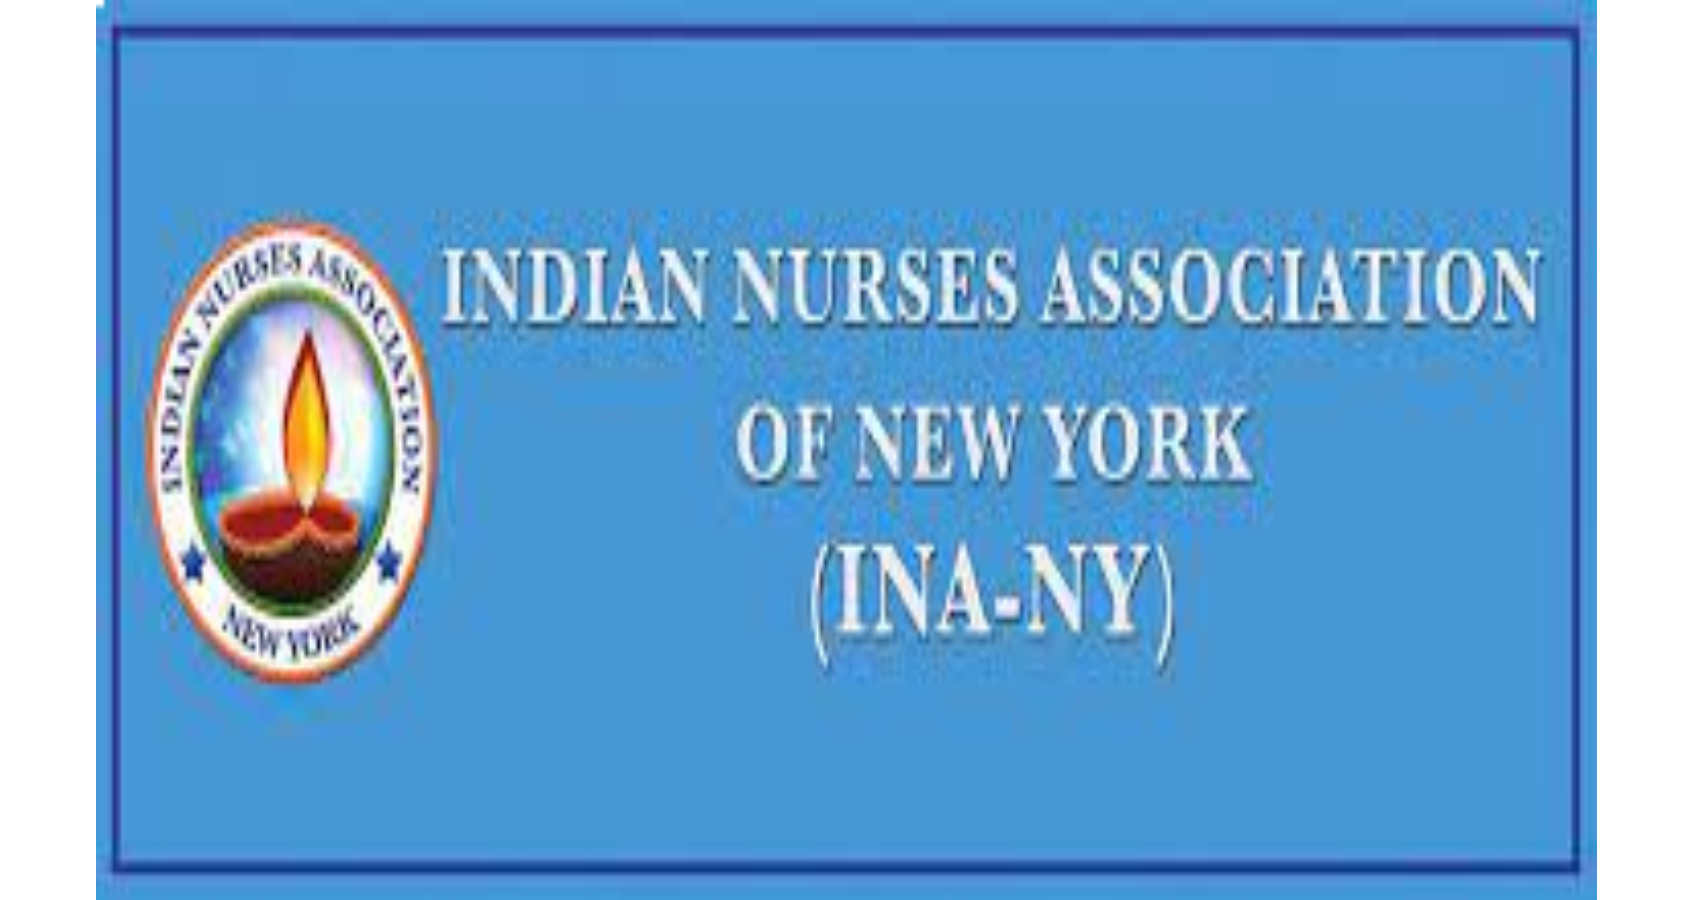 Indian Nurses Association of New York Announces Essay Contest